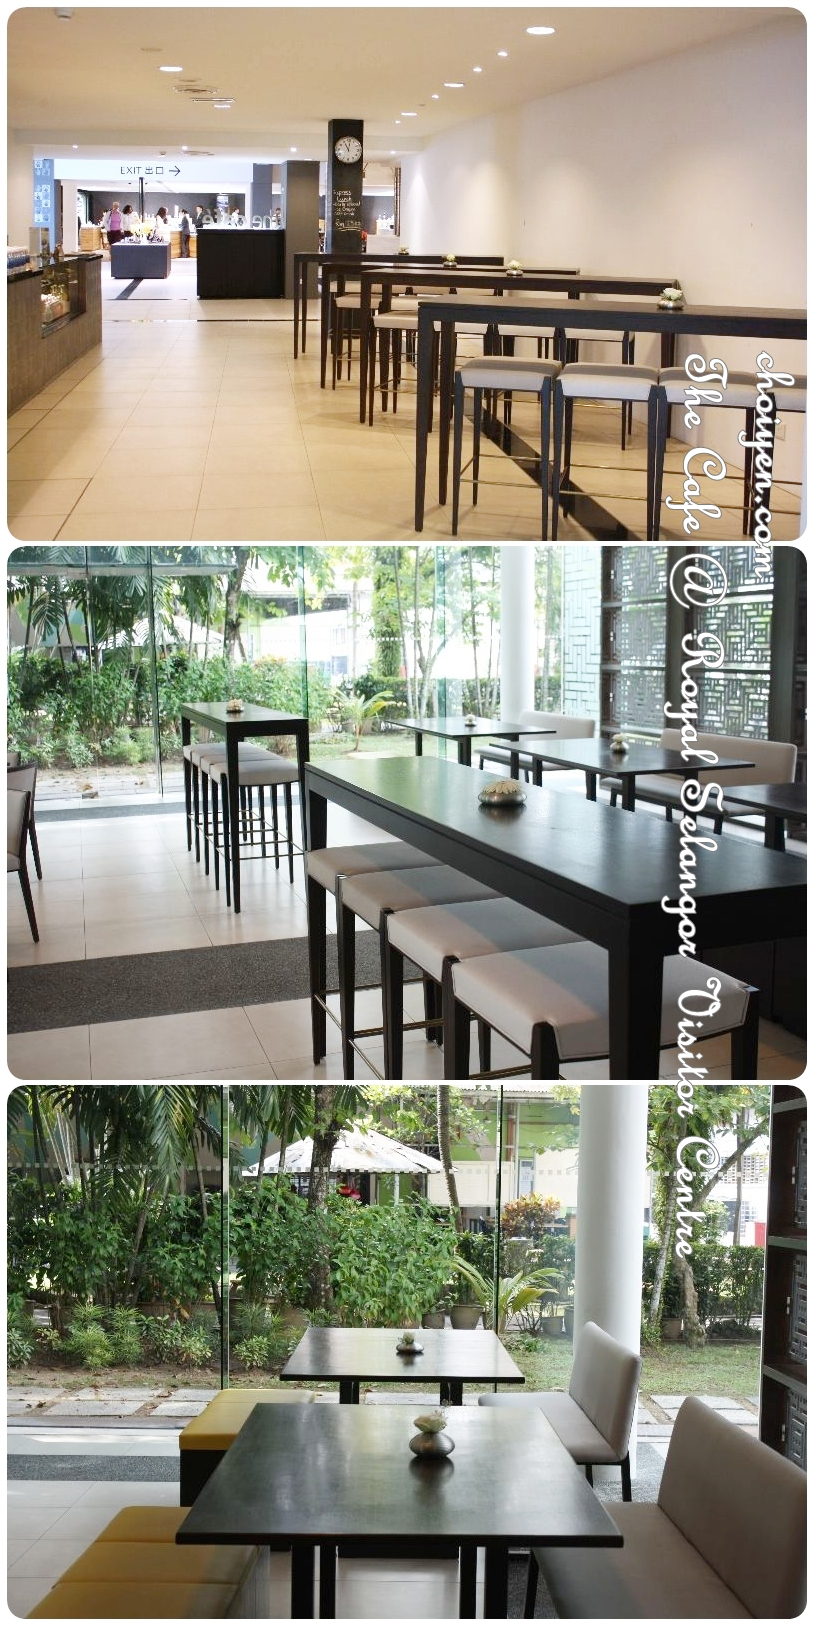 The cafe royal selangor visitor centre mimi 39 s dining room for Floor to ceiling glass panels